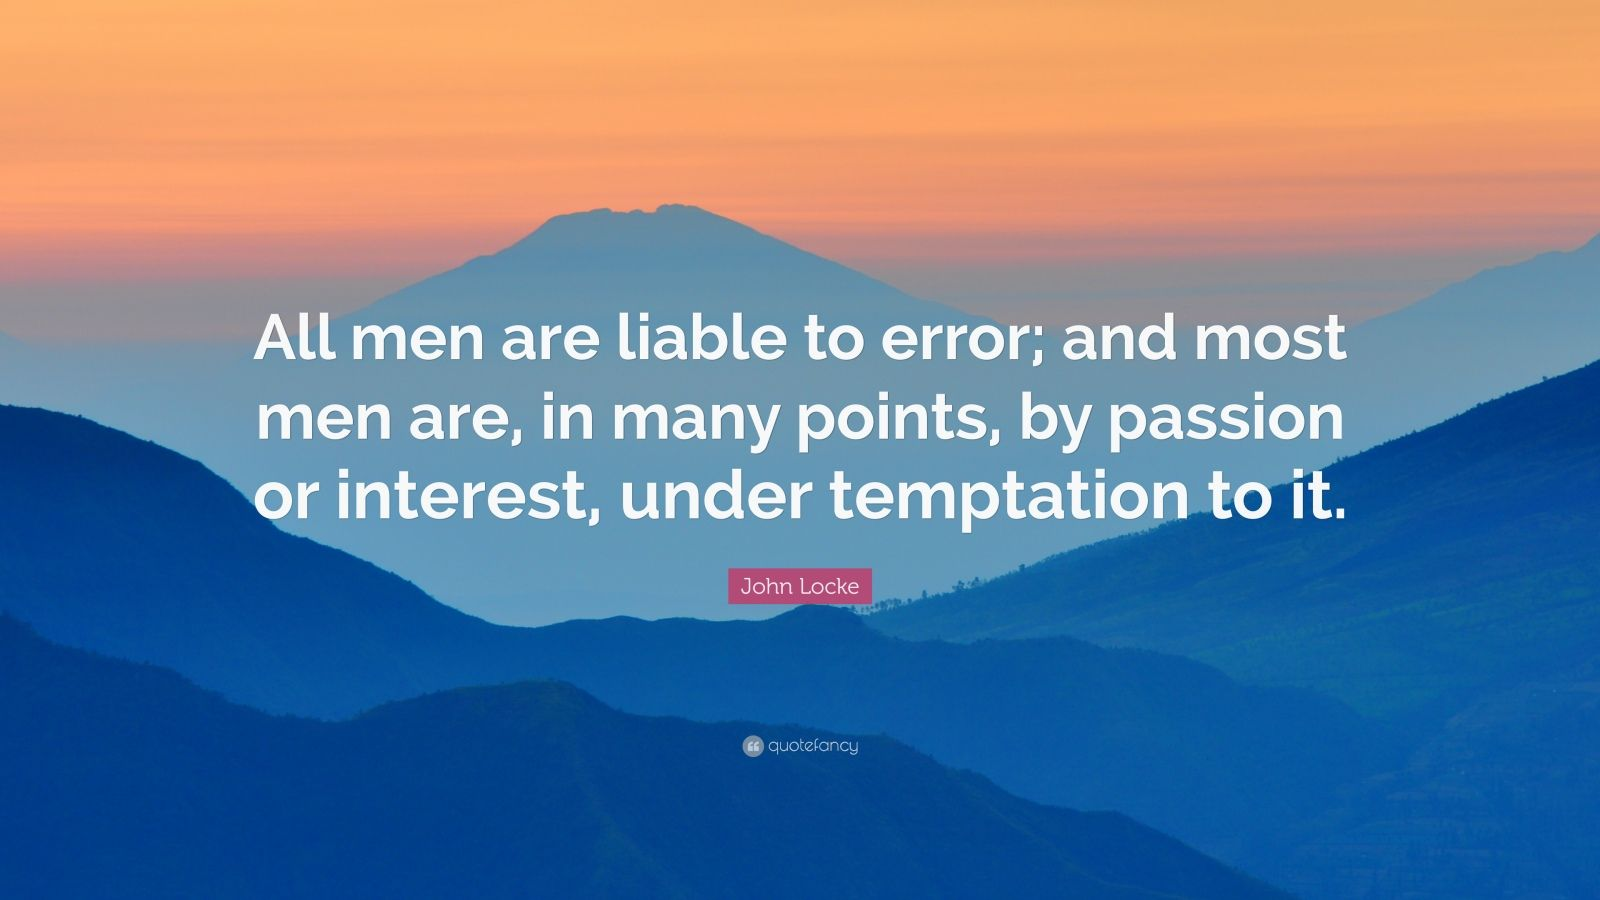 """John Locke Quote: """"All men are liable to error; and most men are, in many points, by passion or interest, under temptation to it."""""""